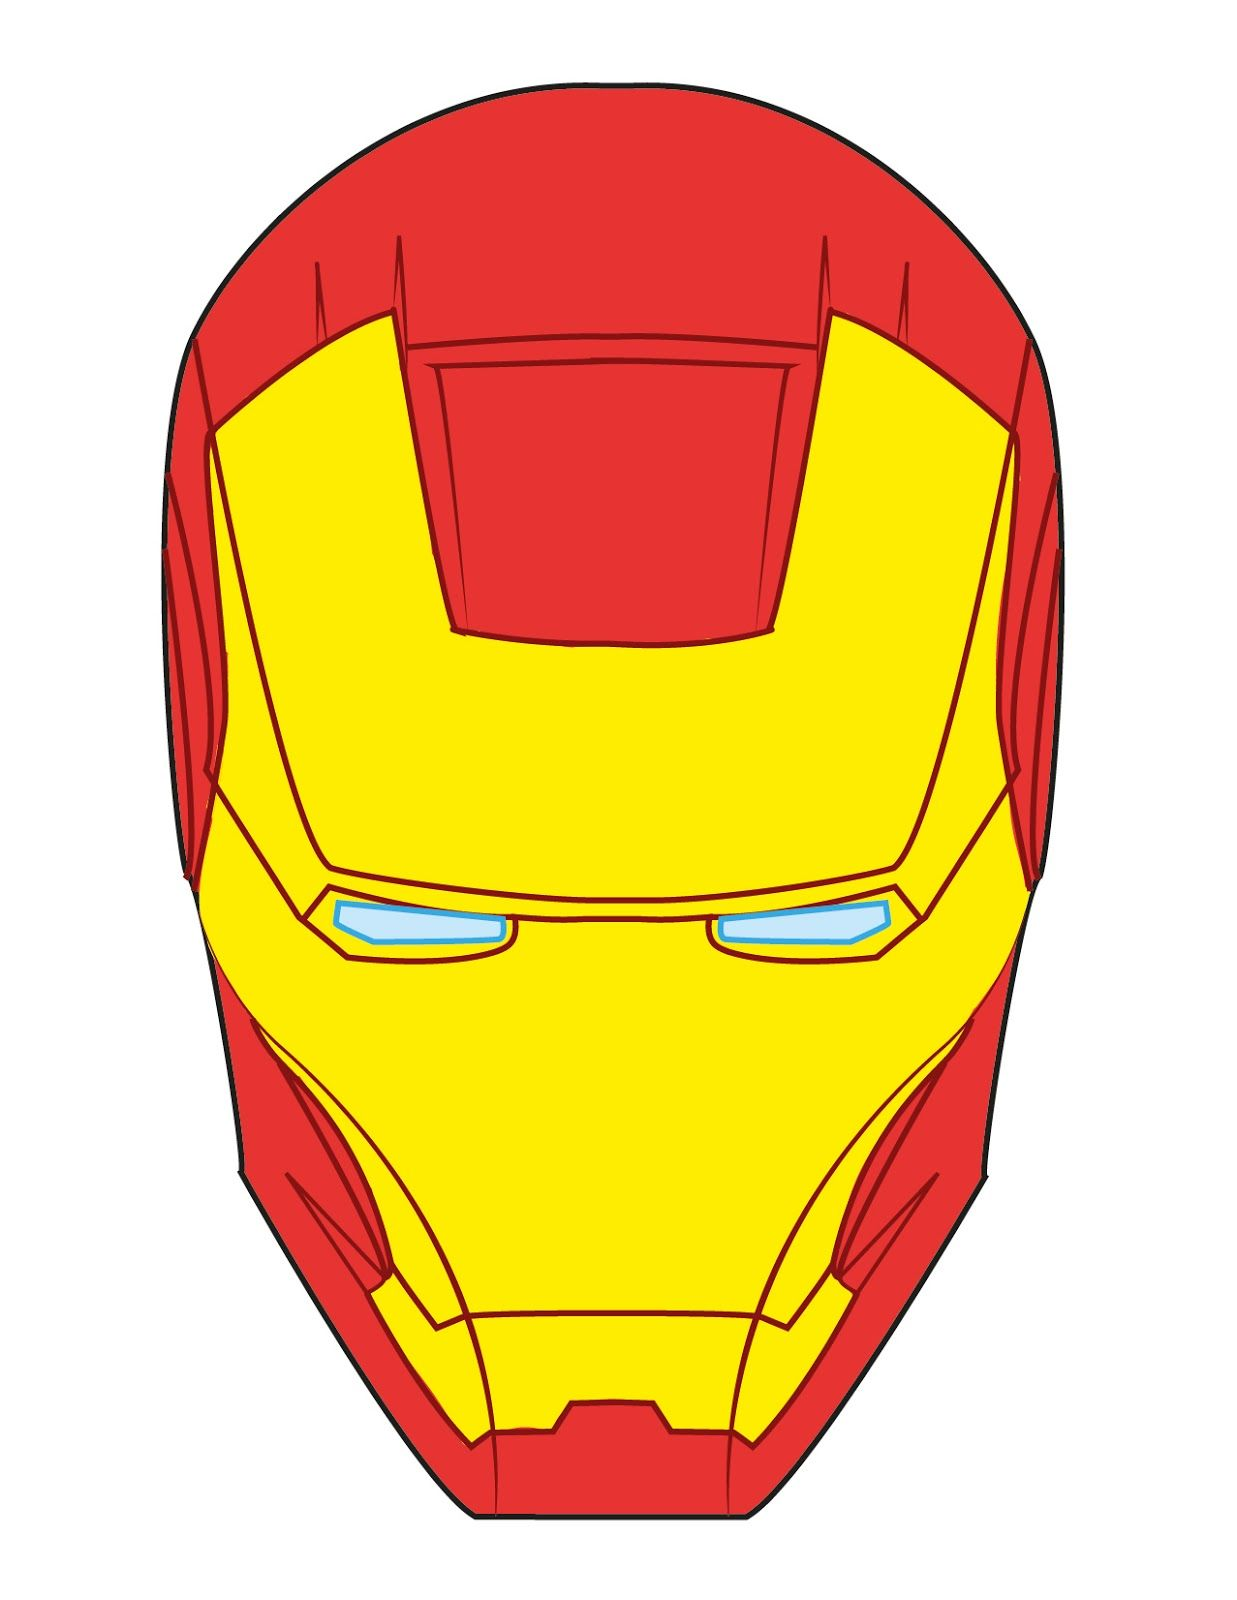 iron man mask fondant - Google Search | Iron man face ...